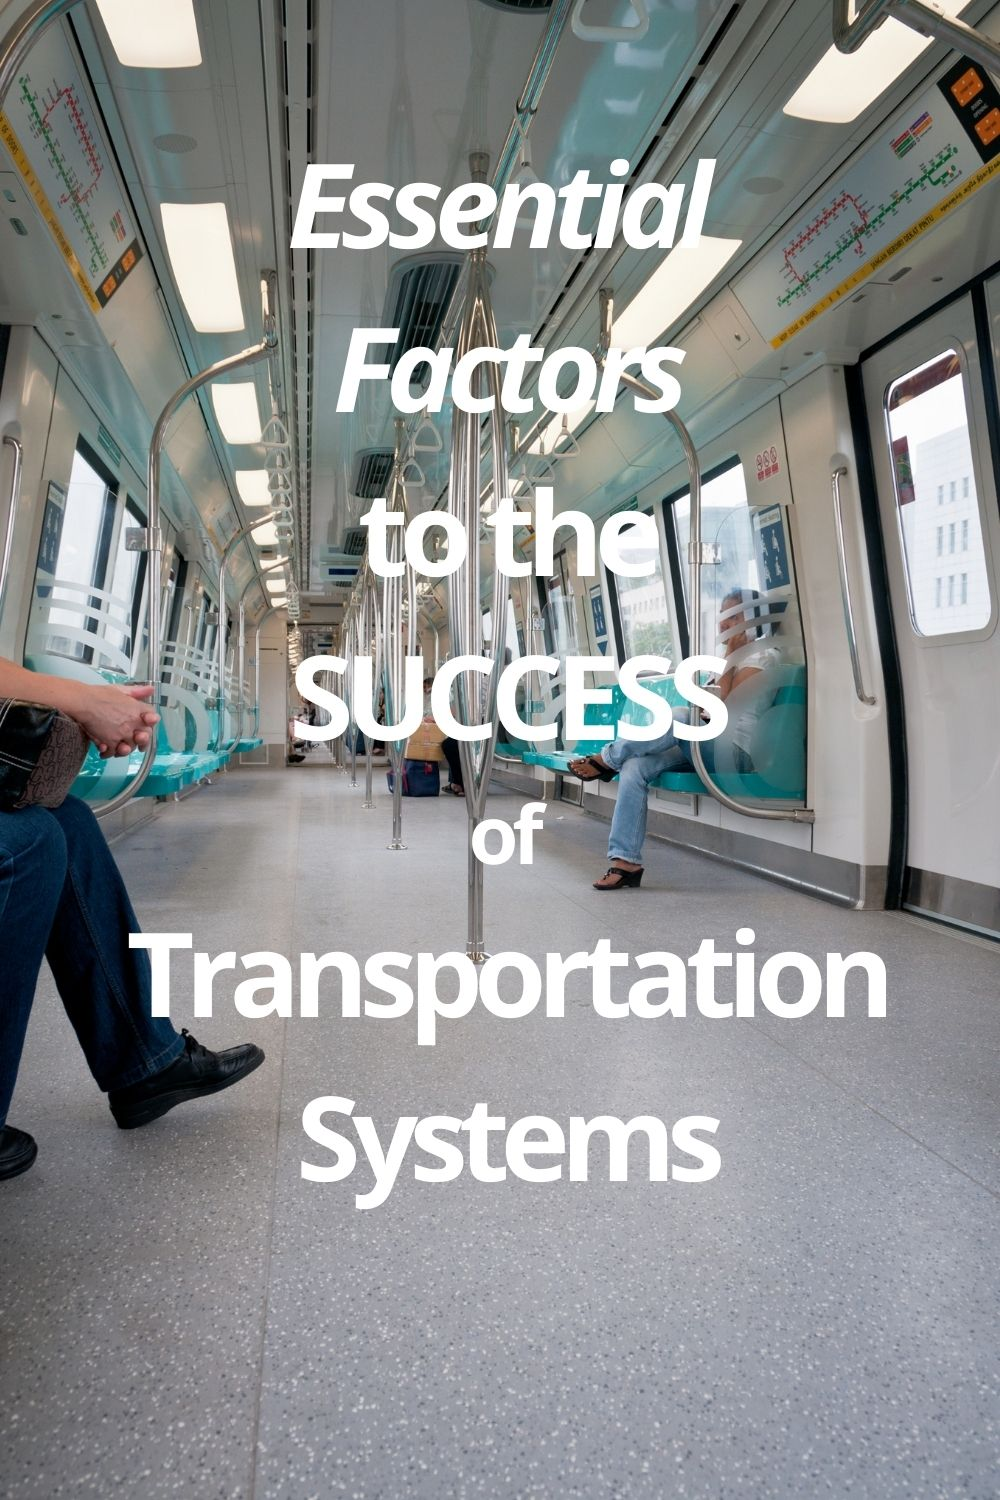 Essential Factors to the Success of Transportation Systems